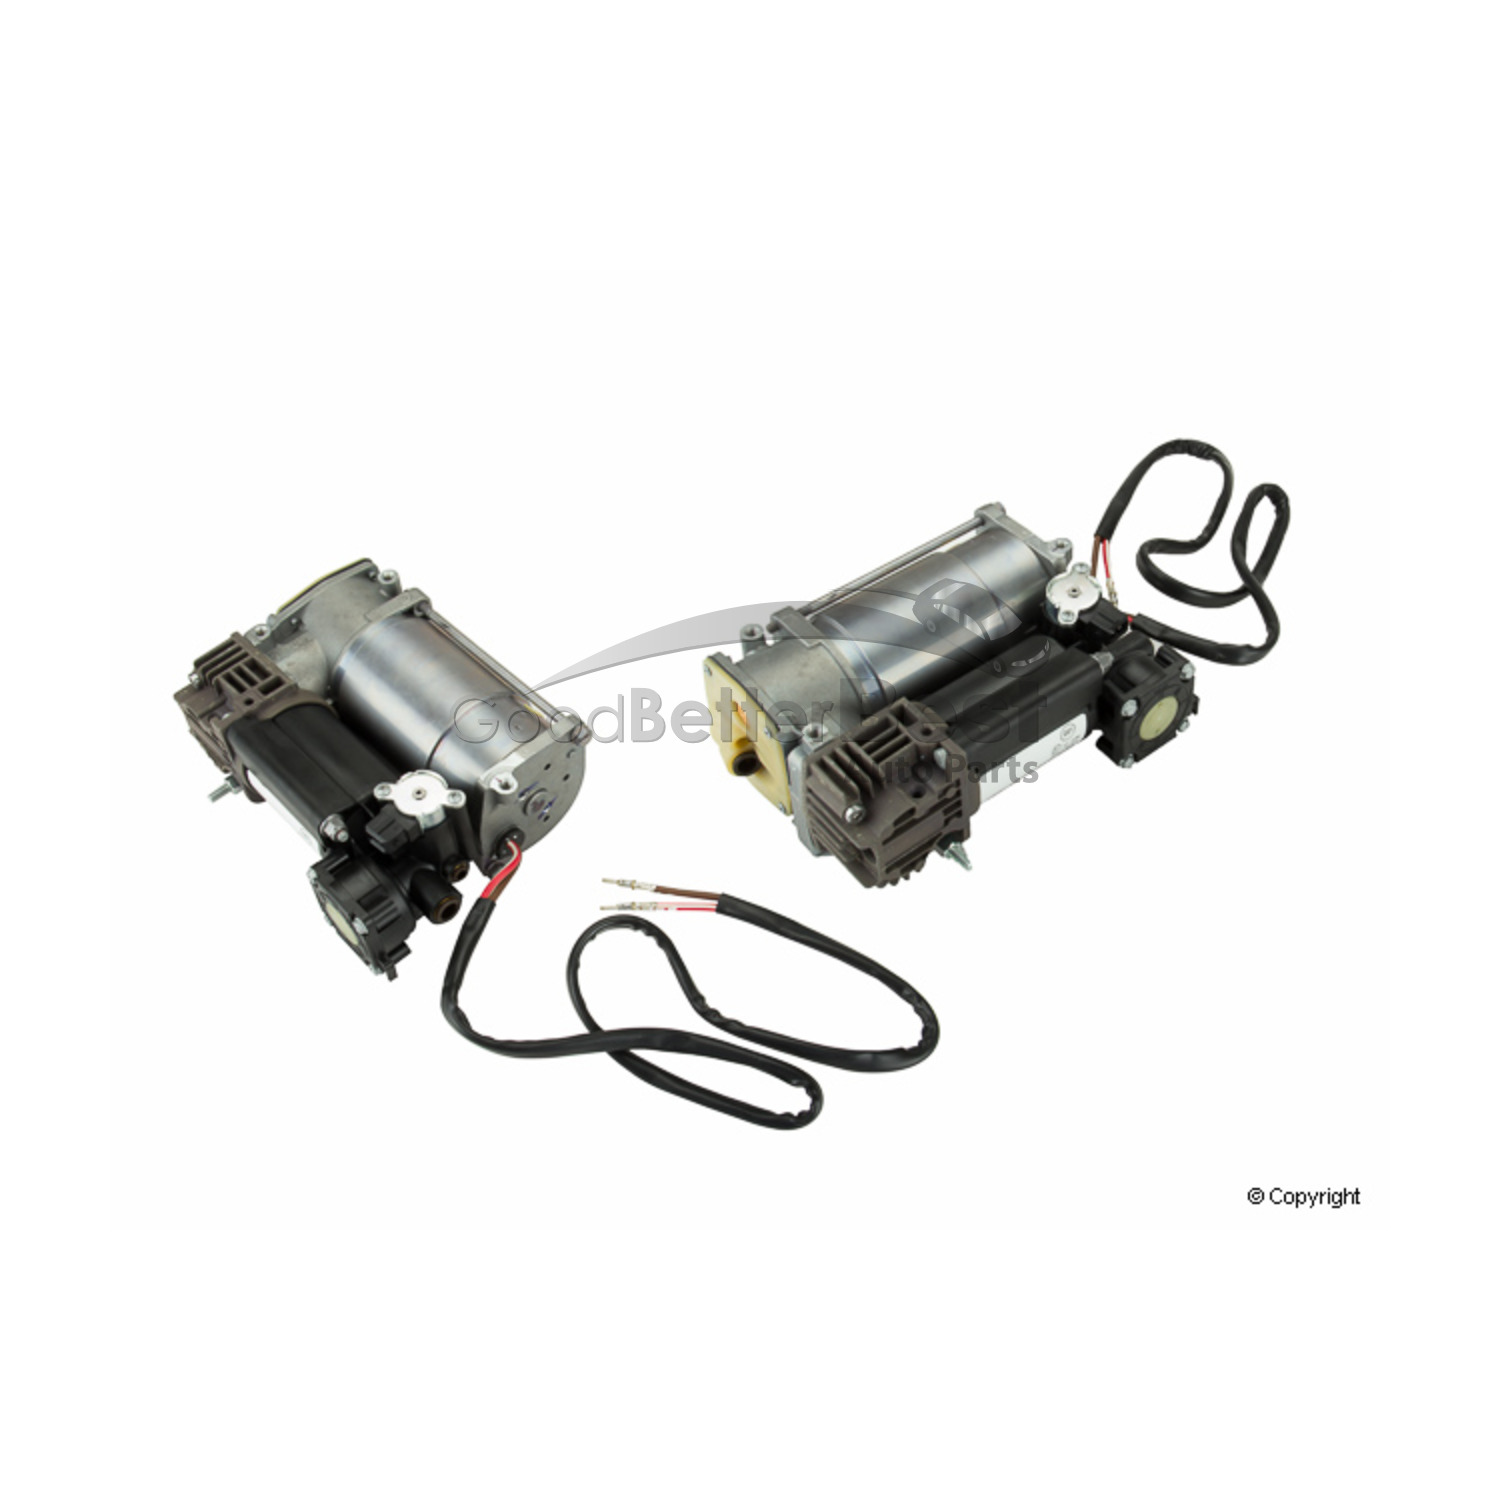 One New Wabco Air Suspension Compressor P For Bmw X5